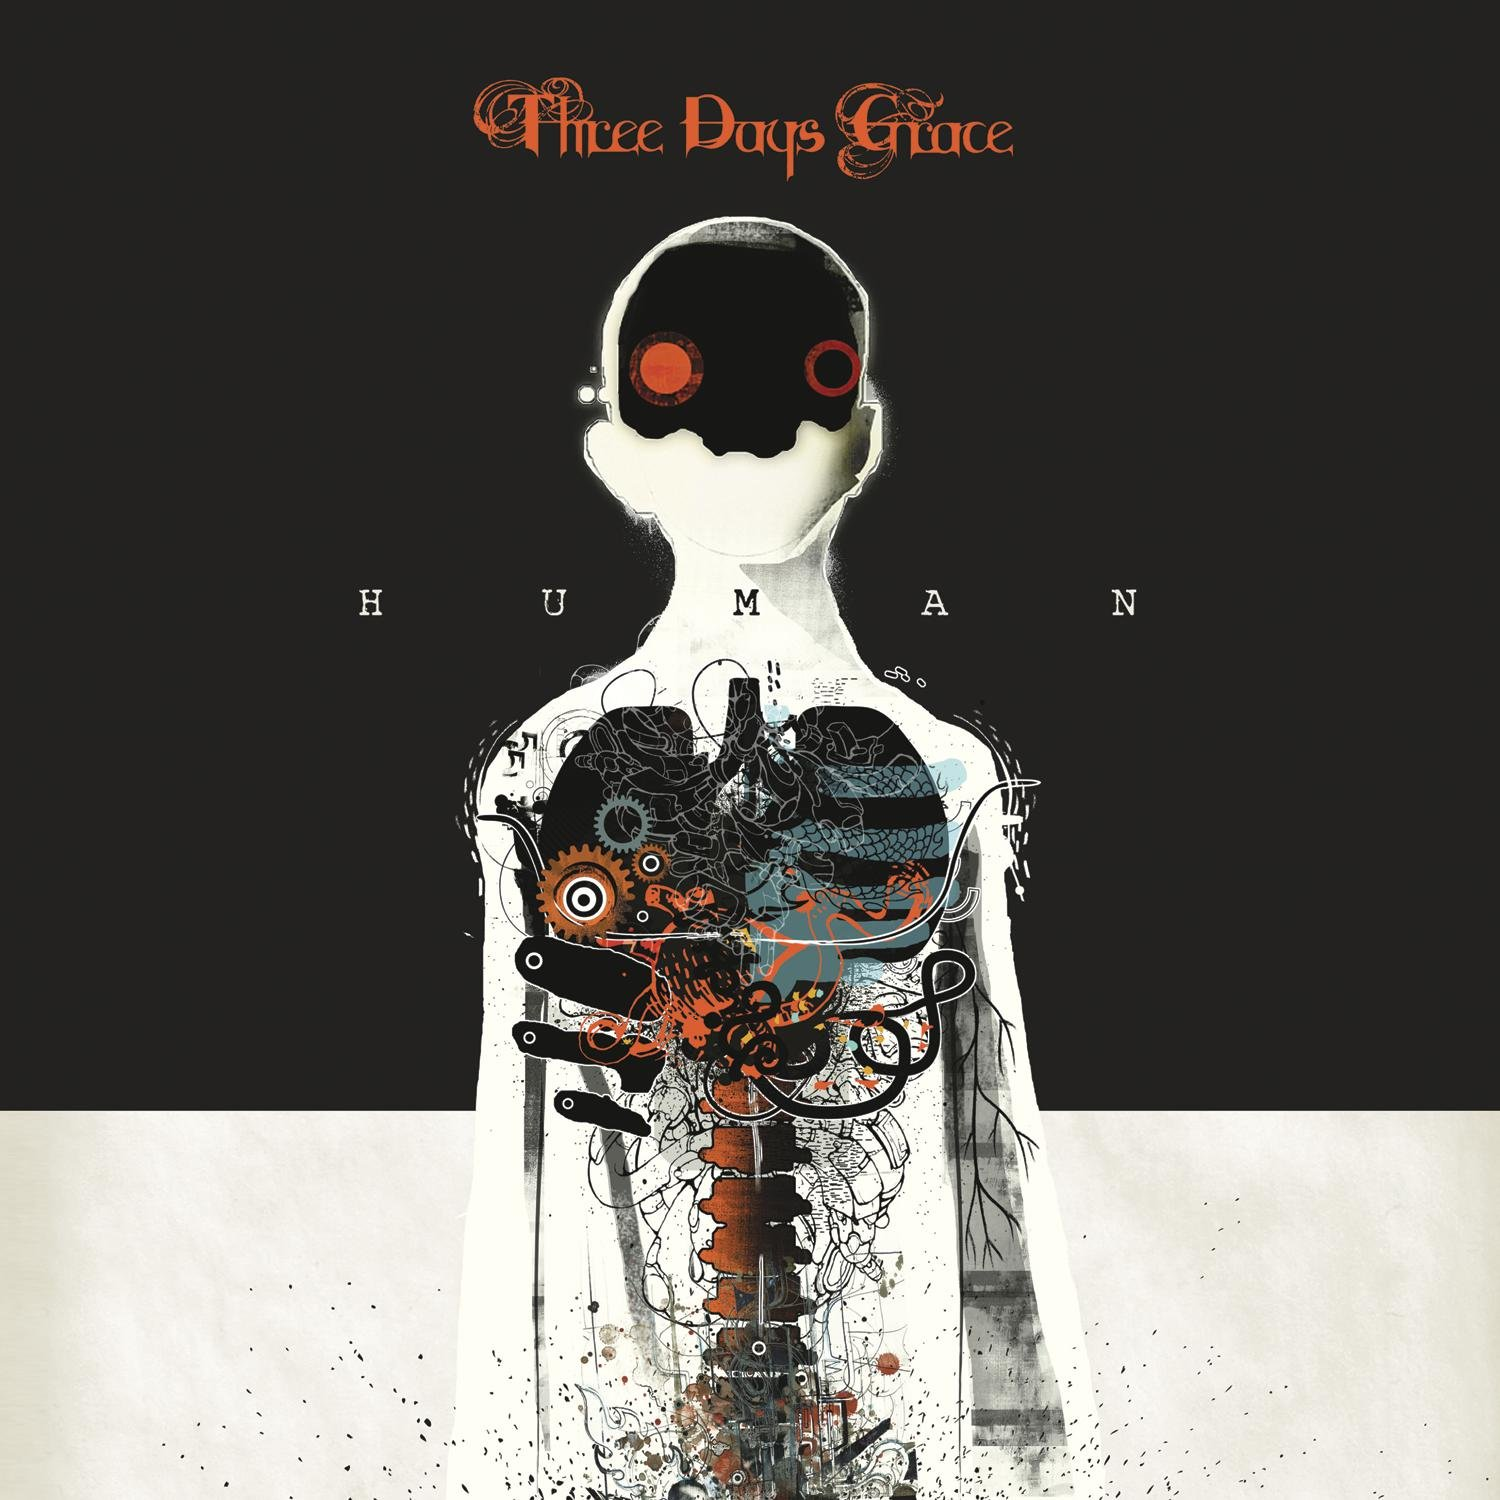 Vinilo : Three Days Grace - Human (Digital Download Card)